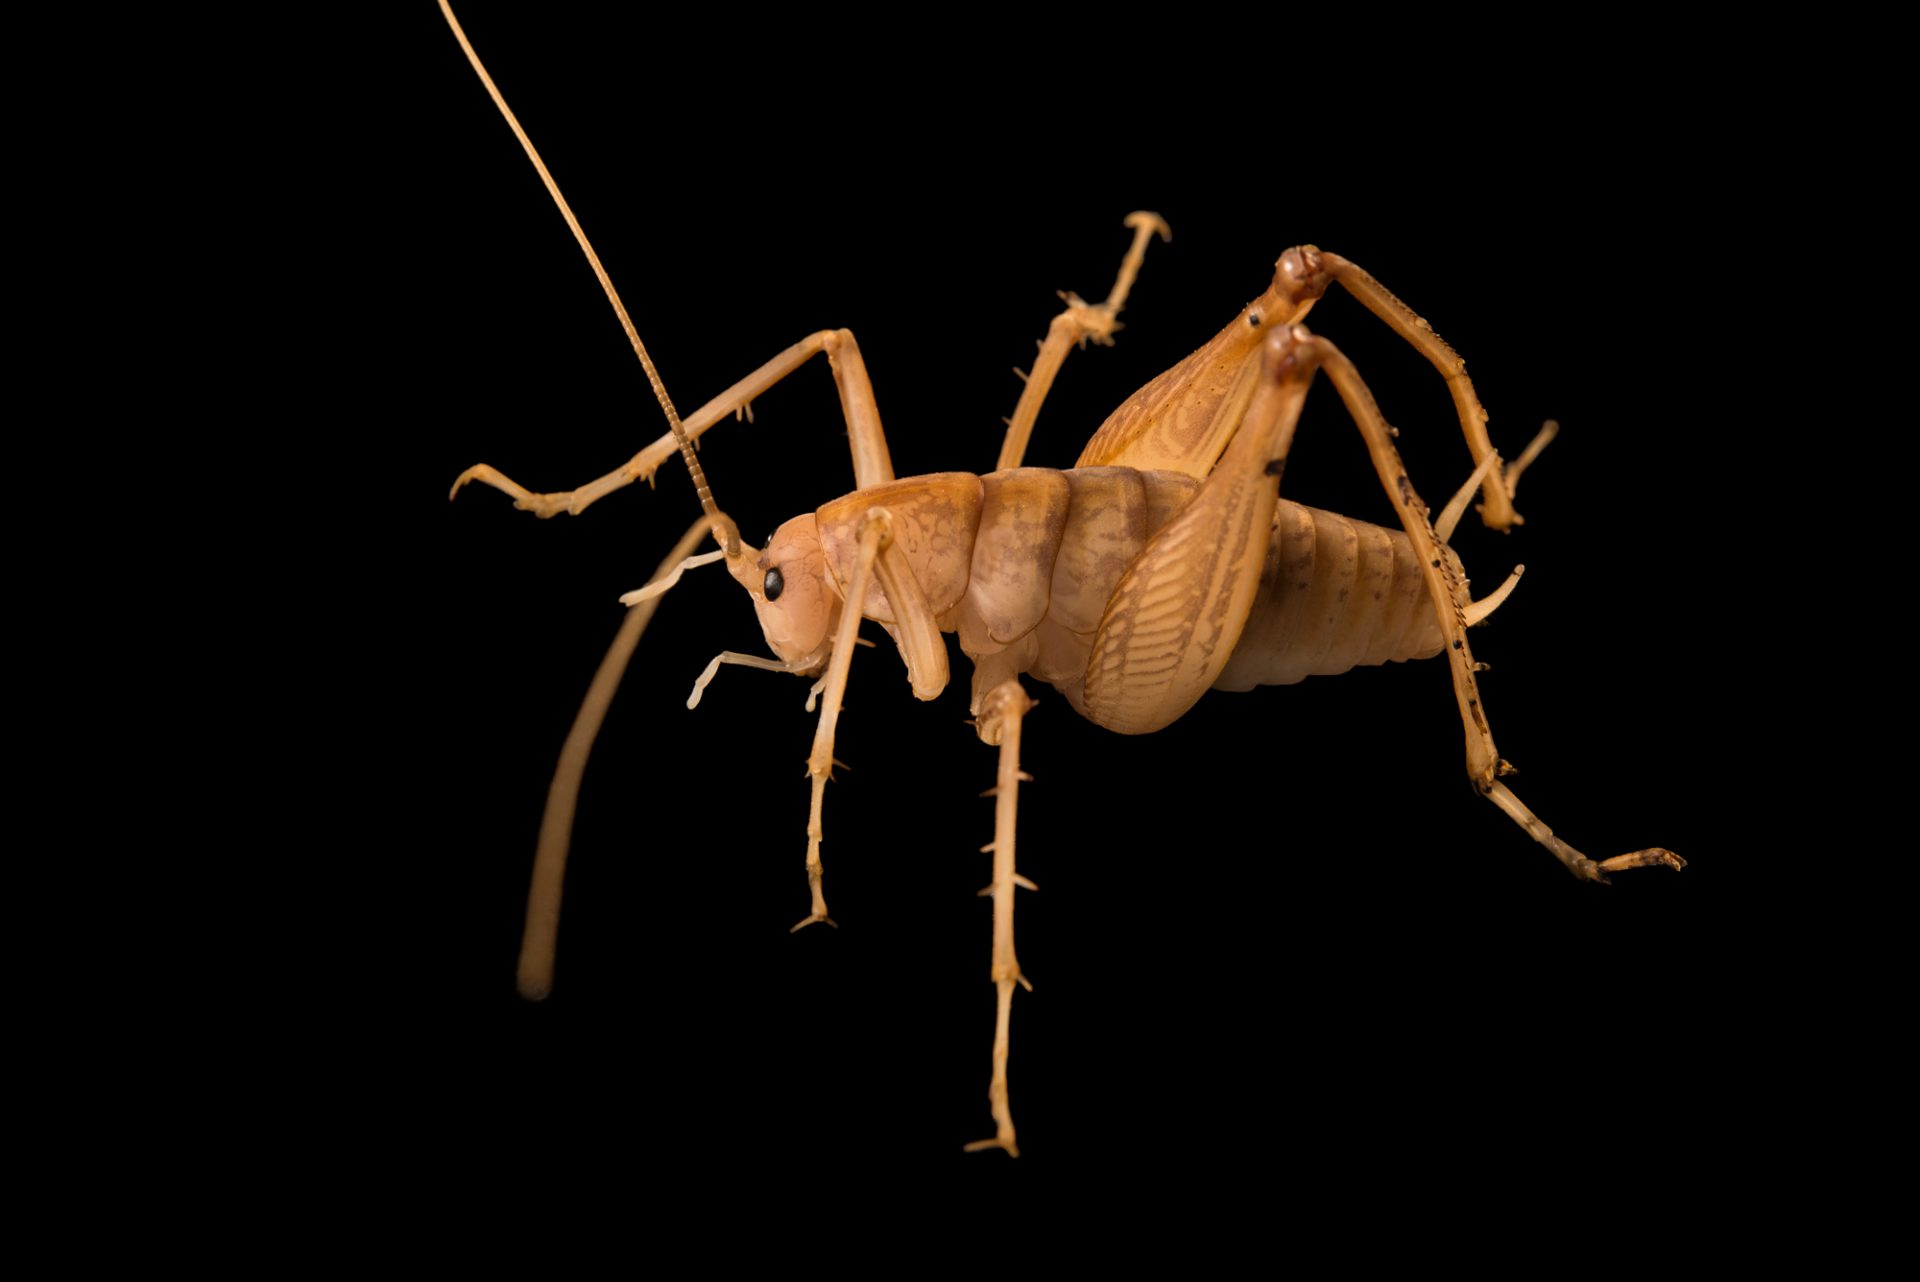 Photo: Camel cricket at the Urban Entomology Lab at the University of Florida in Gainesville.